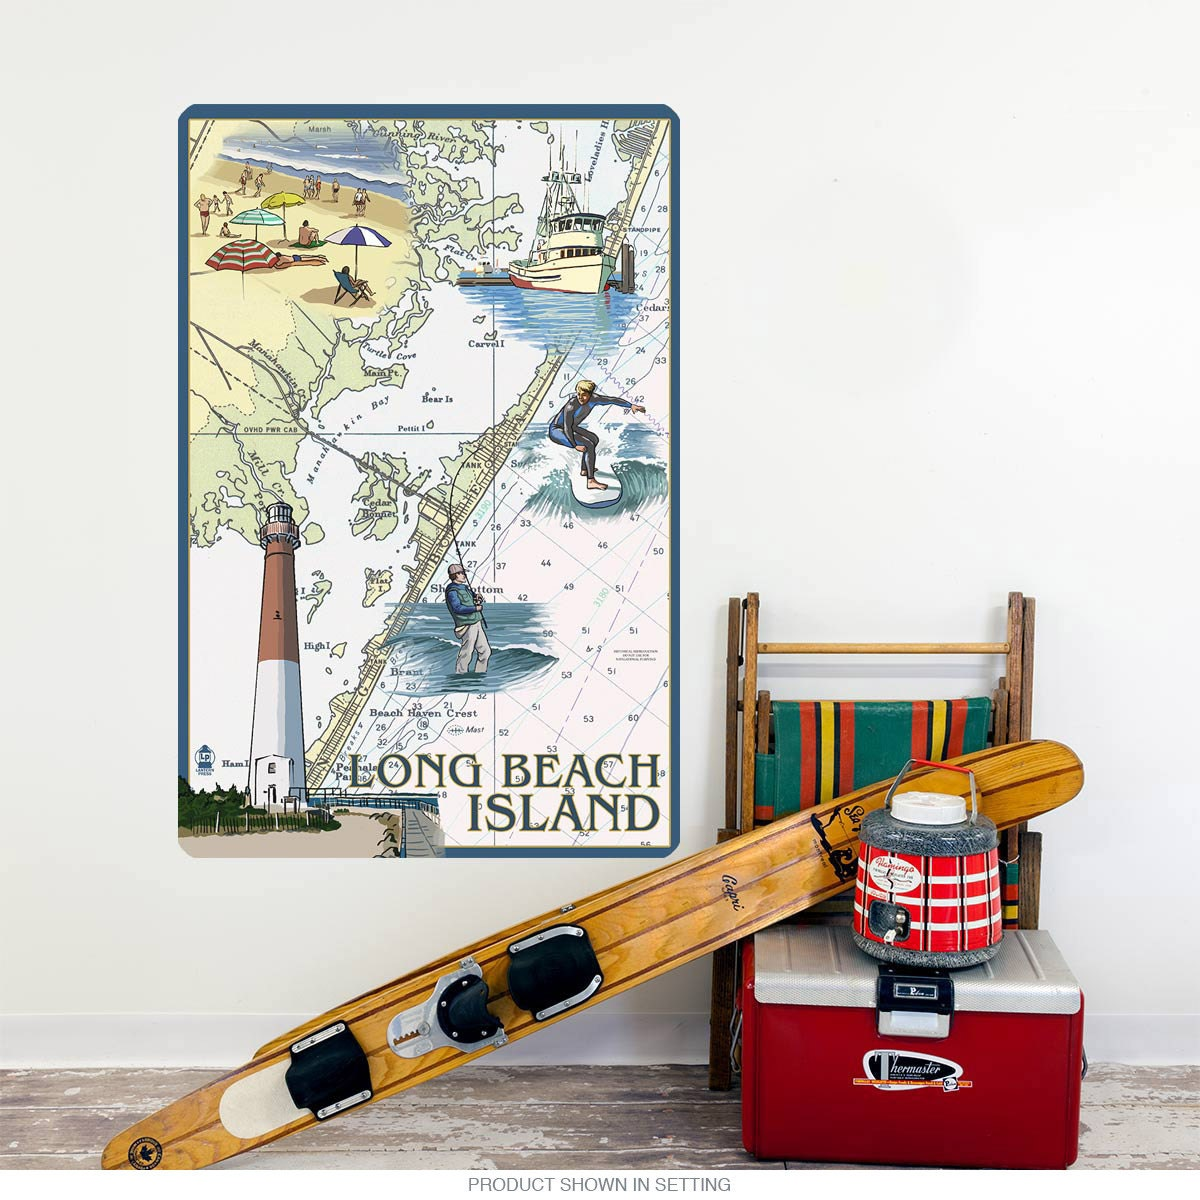 Long Beach Island New Jersey: Long Beach Island New Jersey Wall Decal 60682